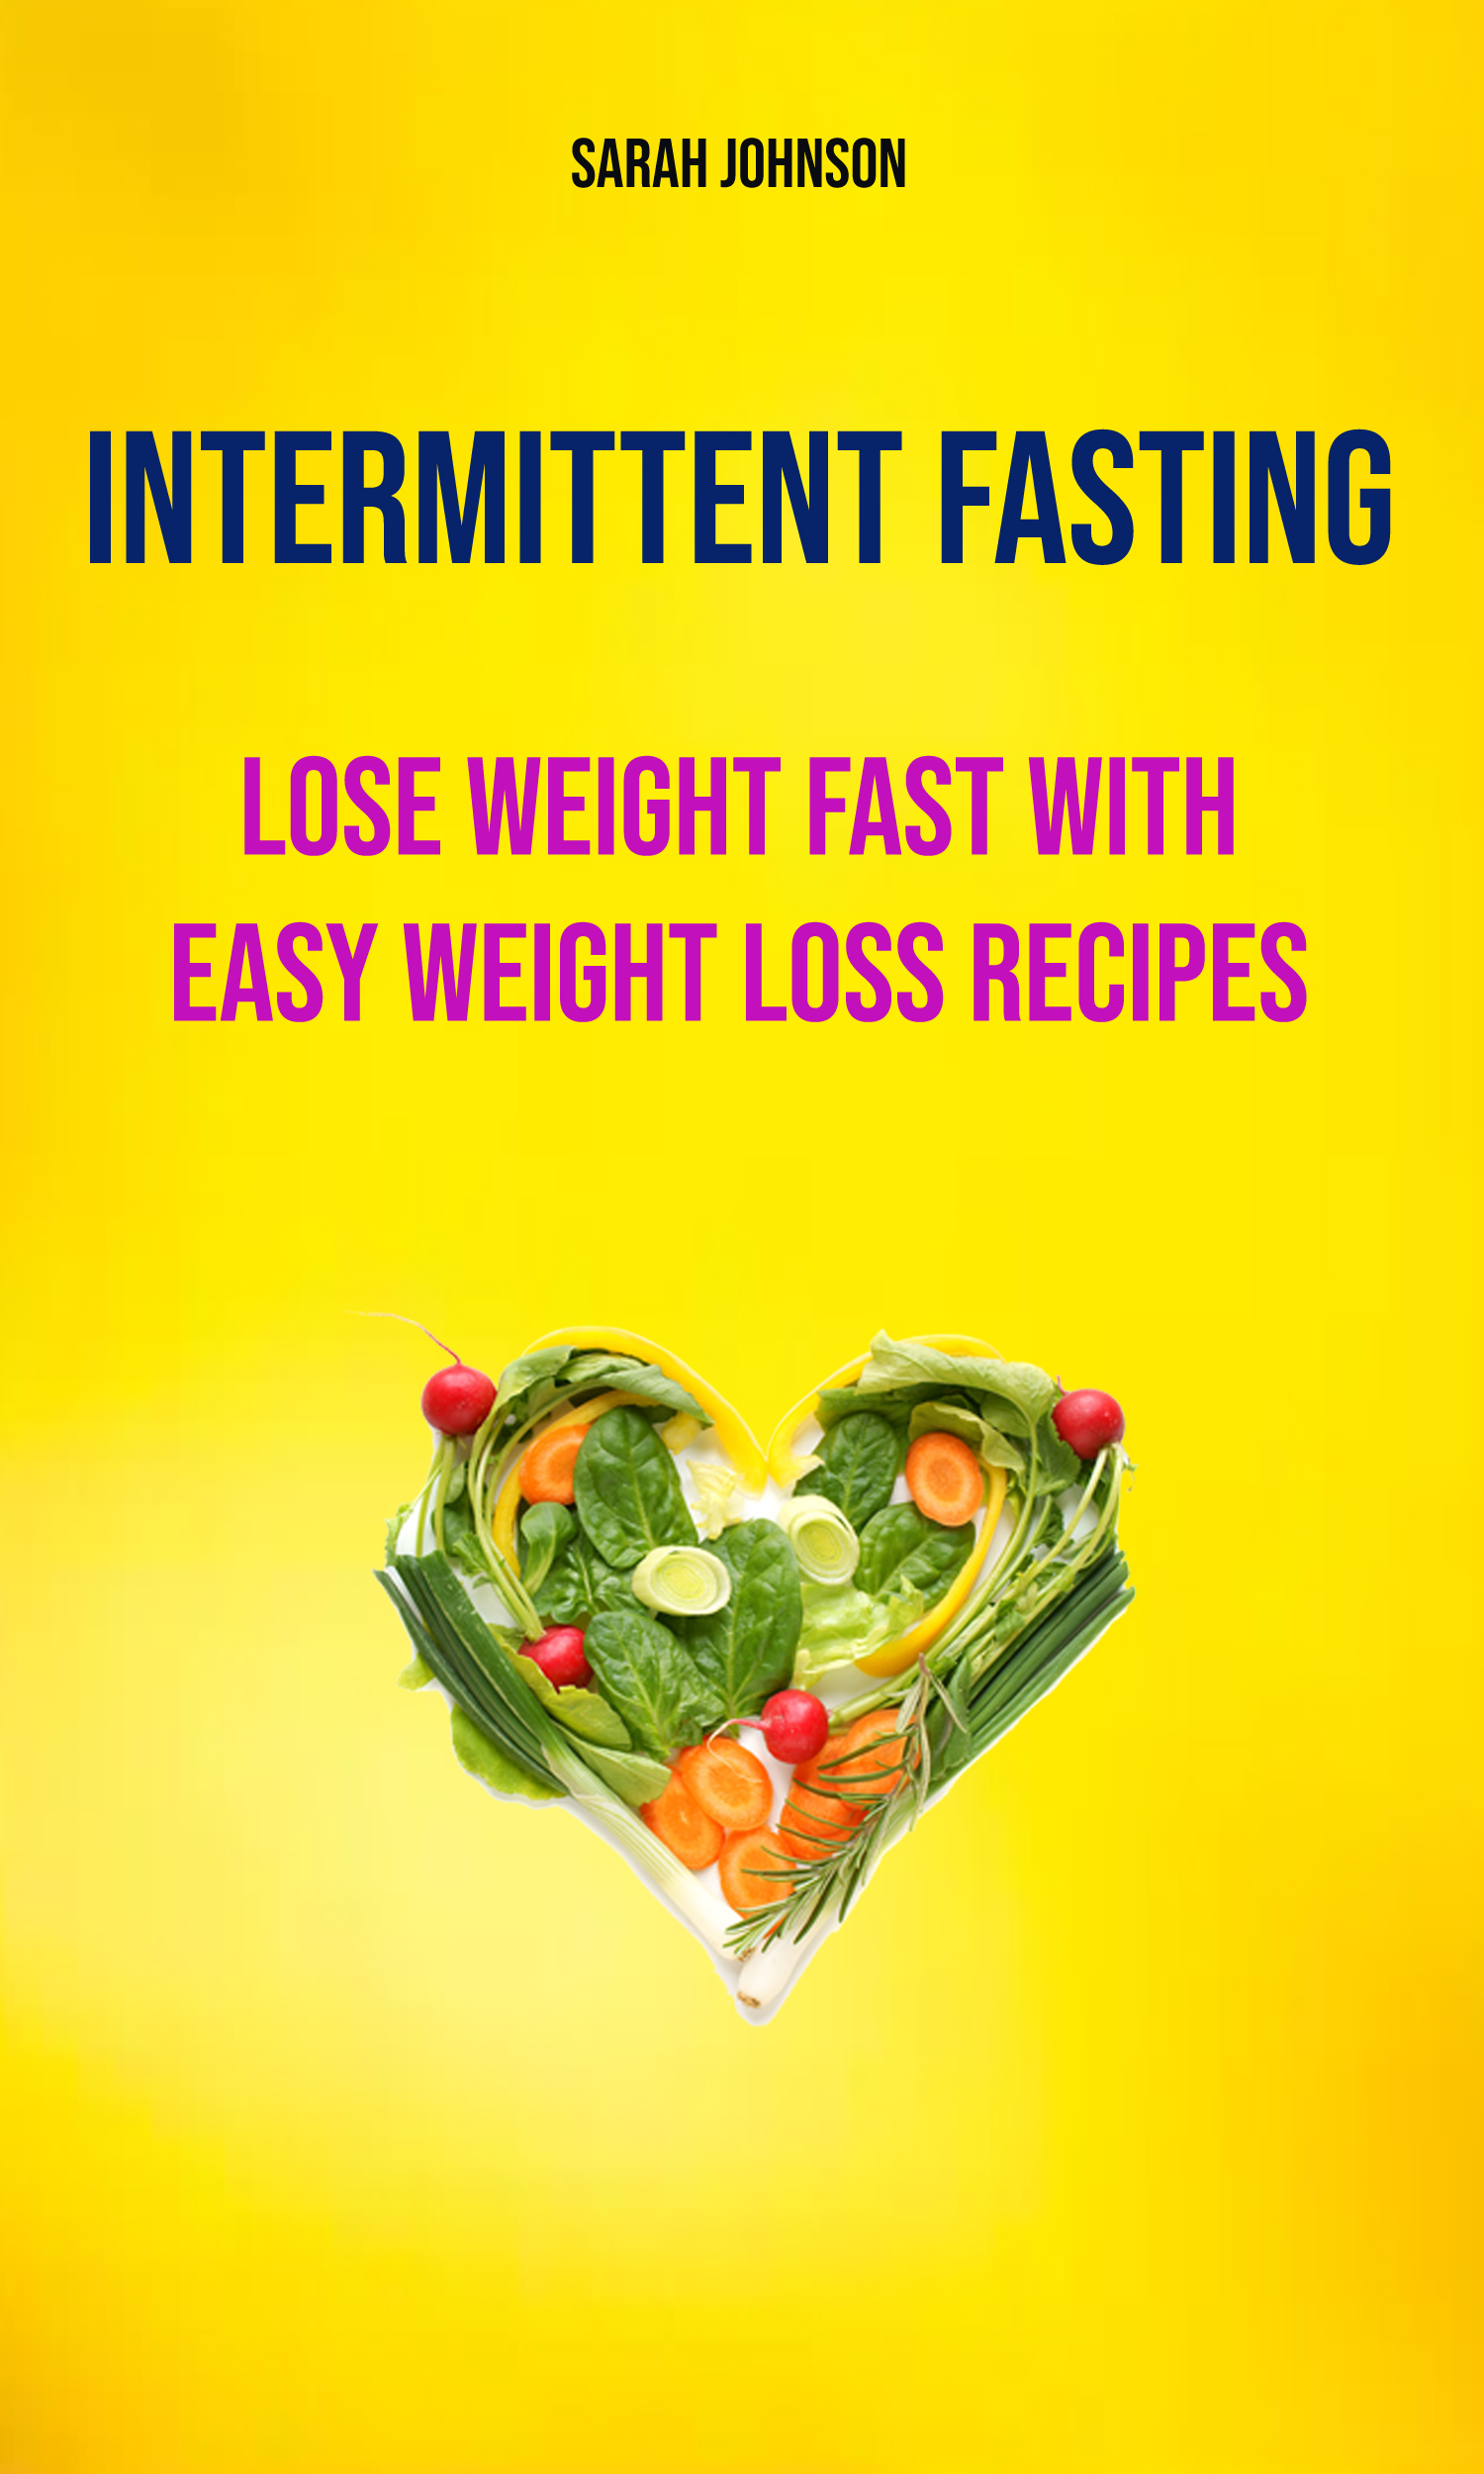 Intermittent fasting: lose weight fast with easy weight loss recipes